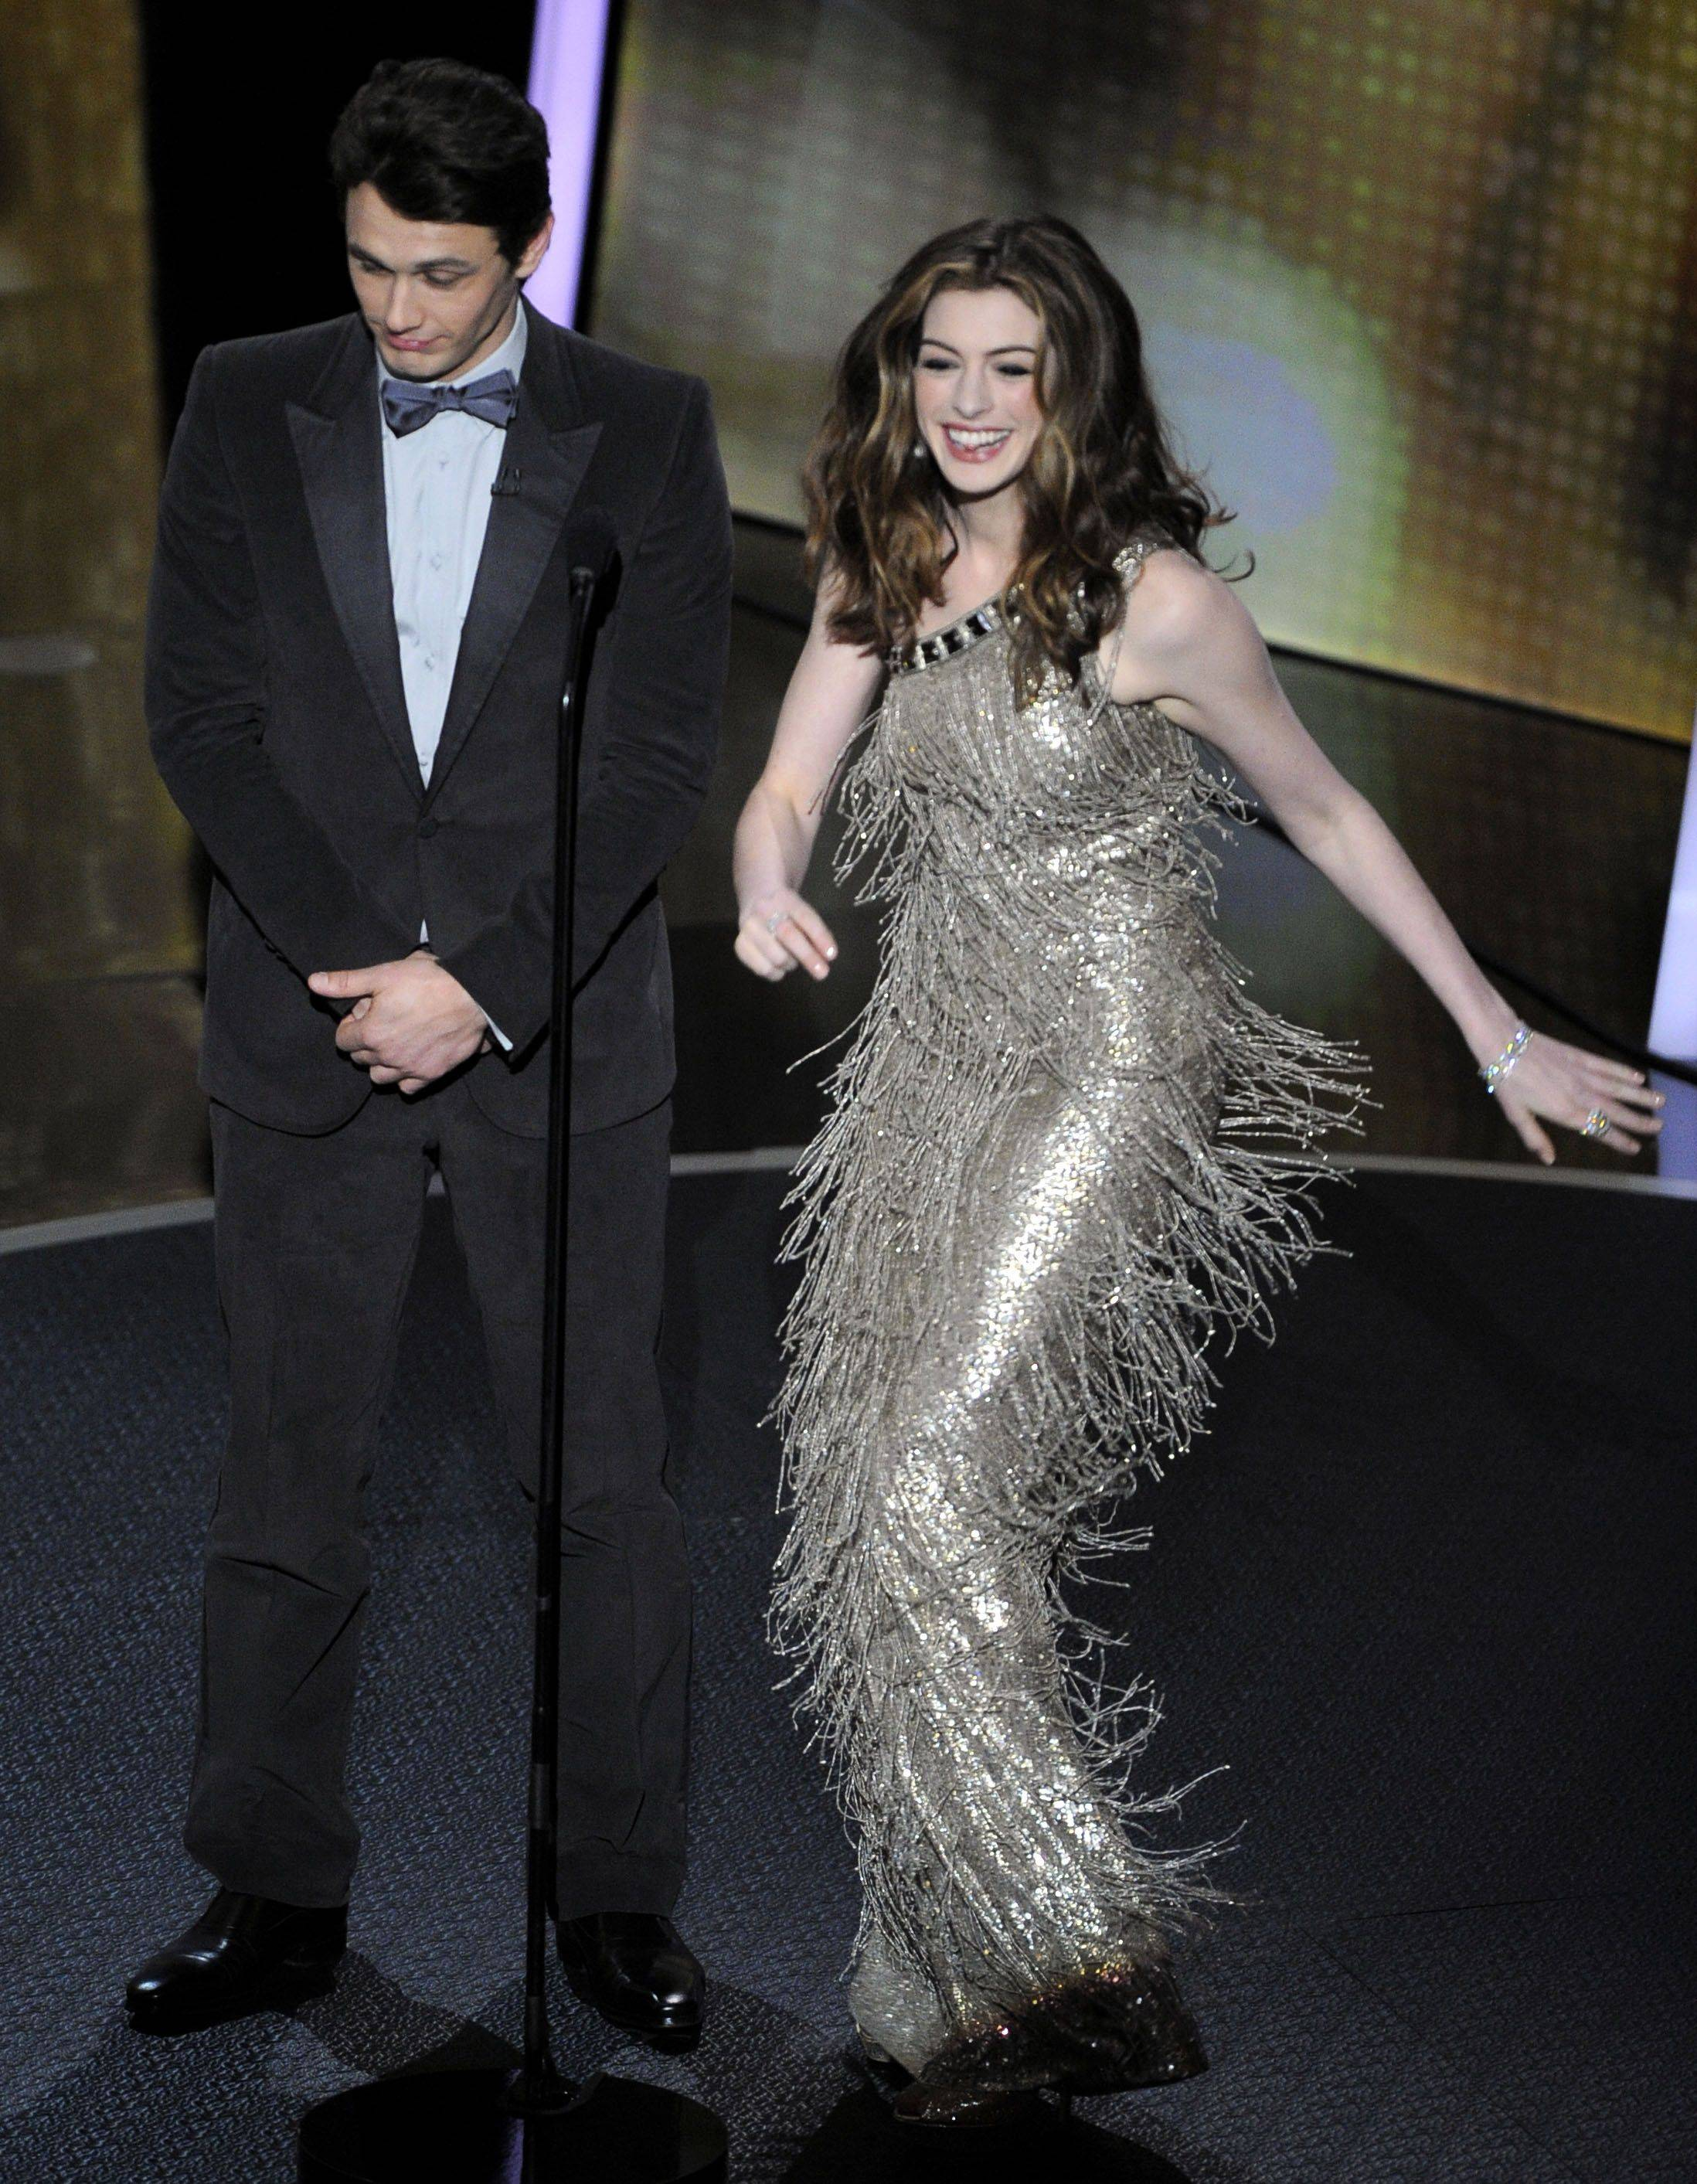 Associated PressAnne Hathaway, with her co-host James Franco, shows off one of her many gowns during the ceremony.